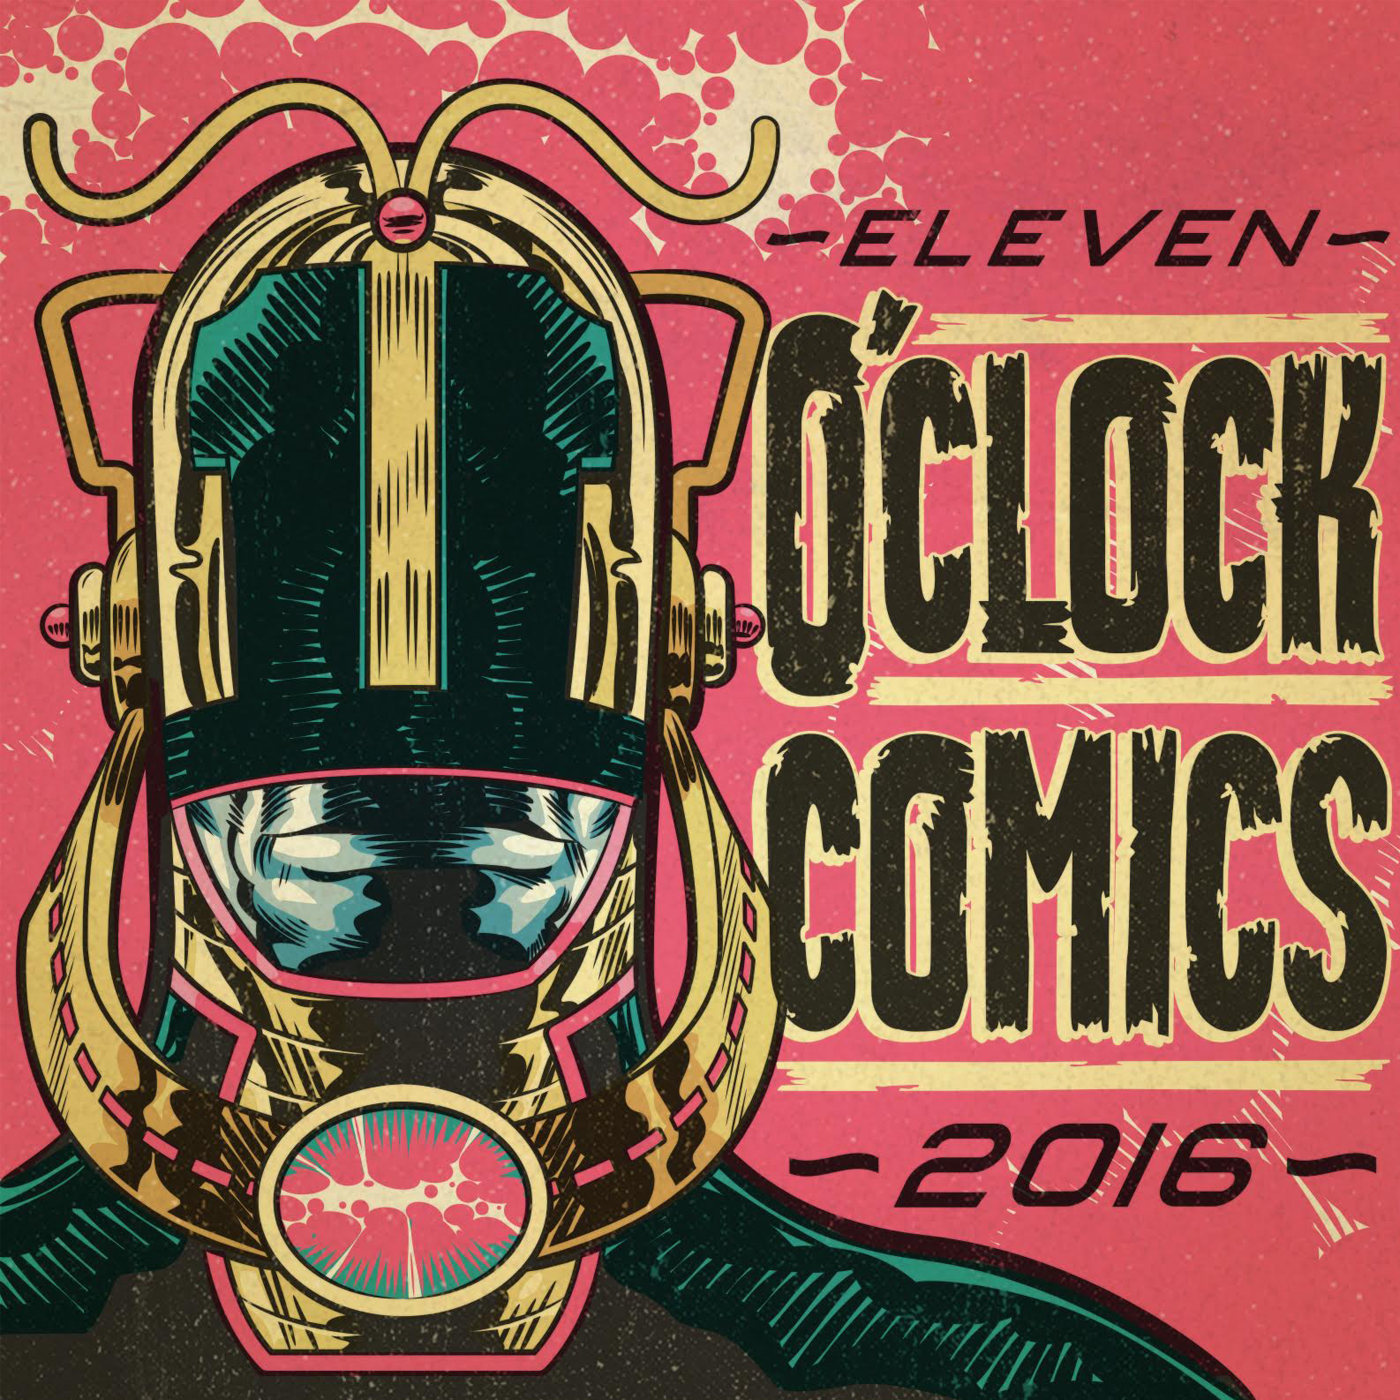 11 O'Clock Comics Episode 419